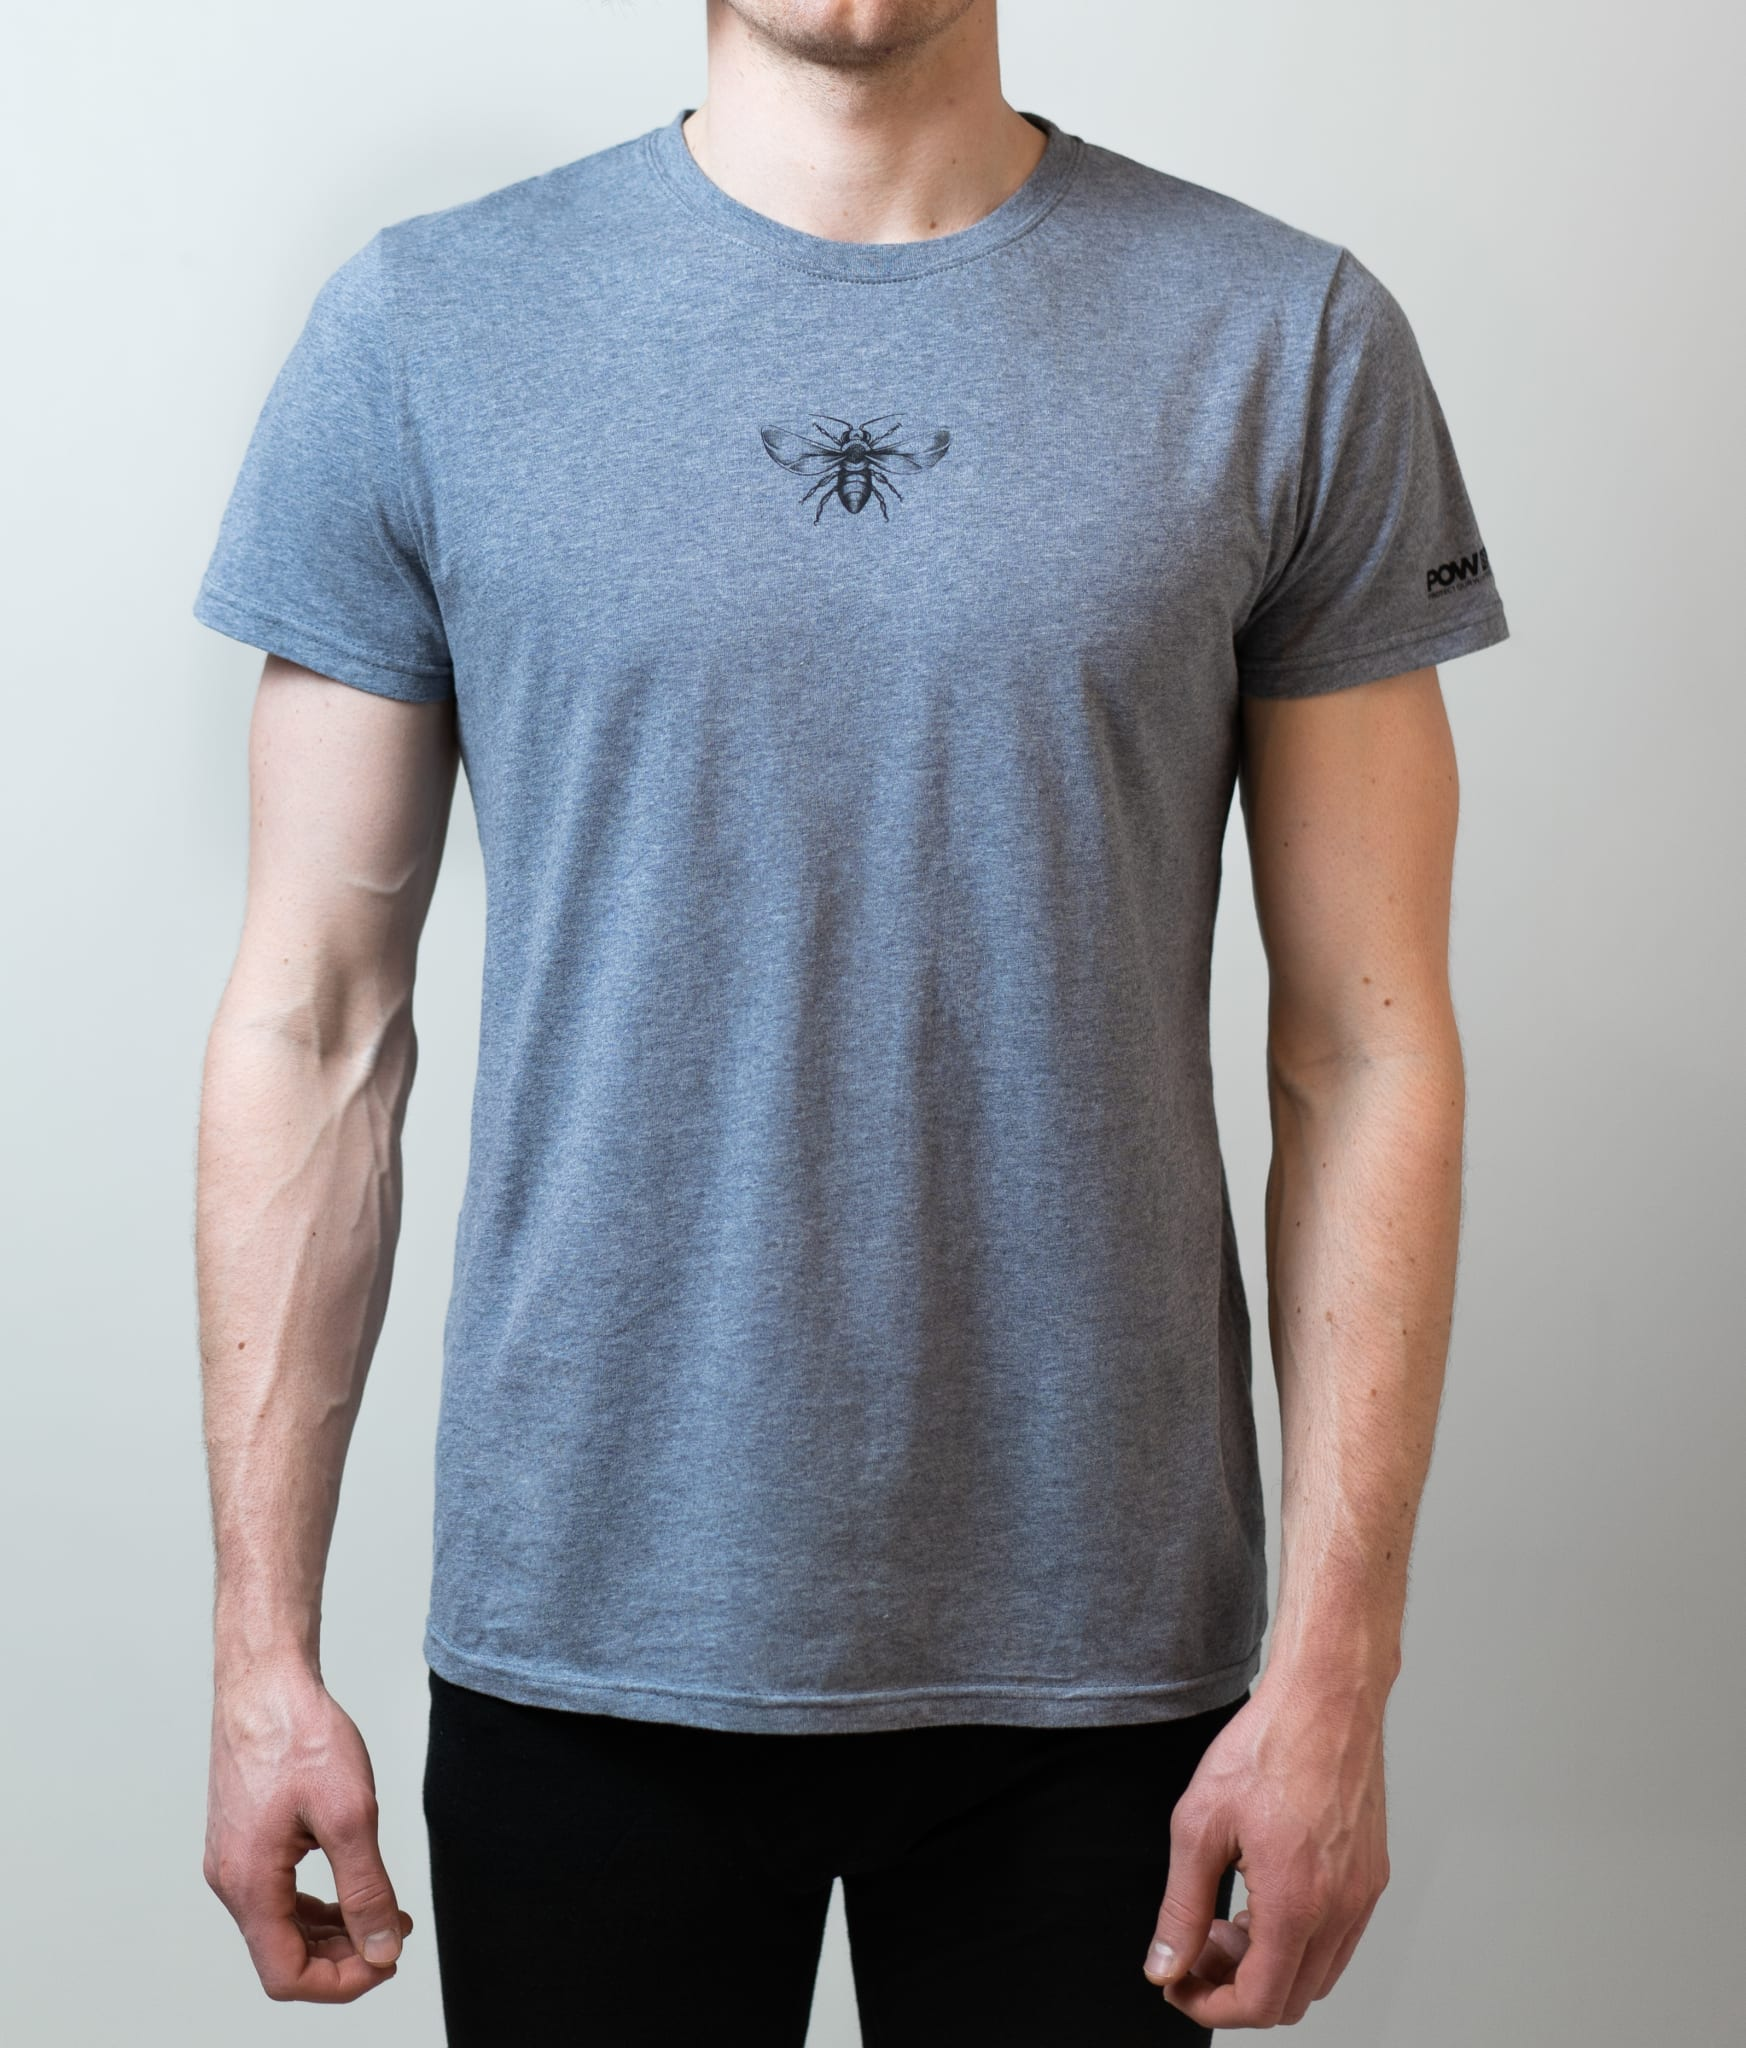 Super Hero Tee: The bee